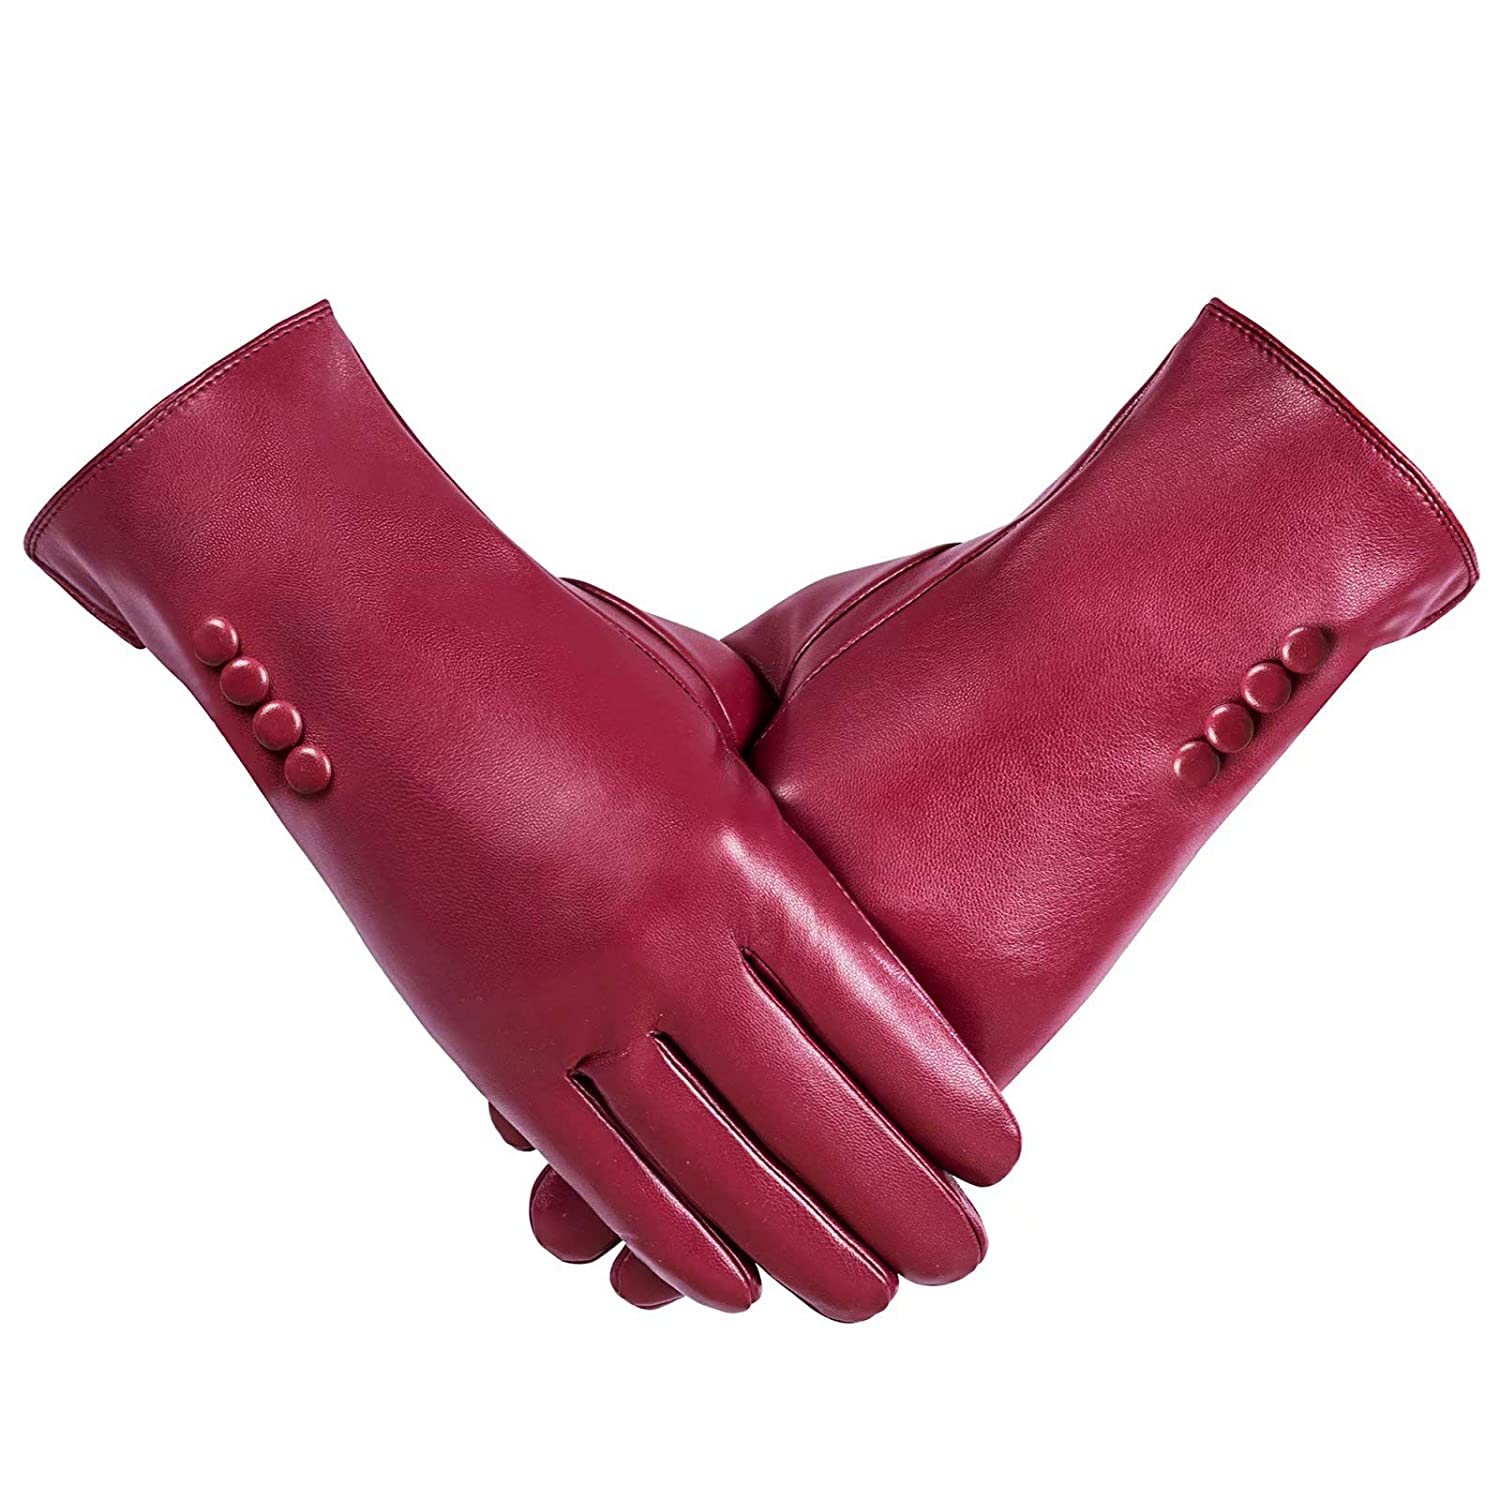 Winter Leather Gloves For Women Warm Thermal Touchscreen Texting Typing Dress Driving Motorcycle Gloves With Wool Lining